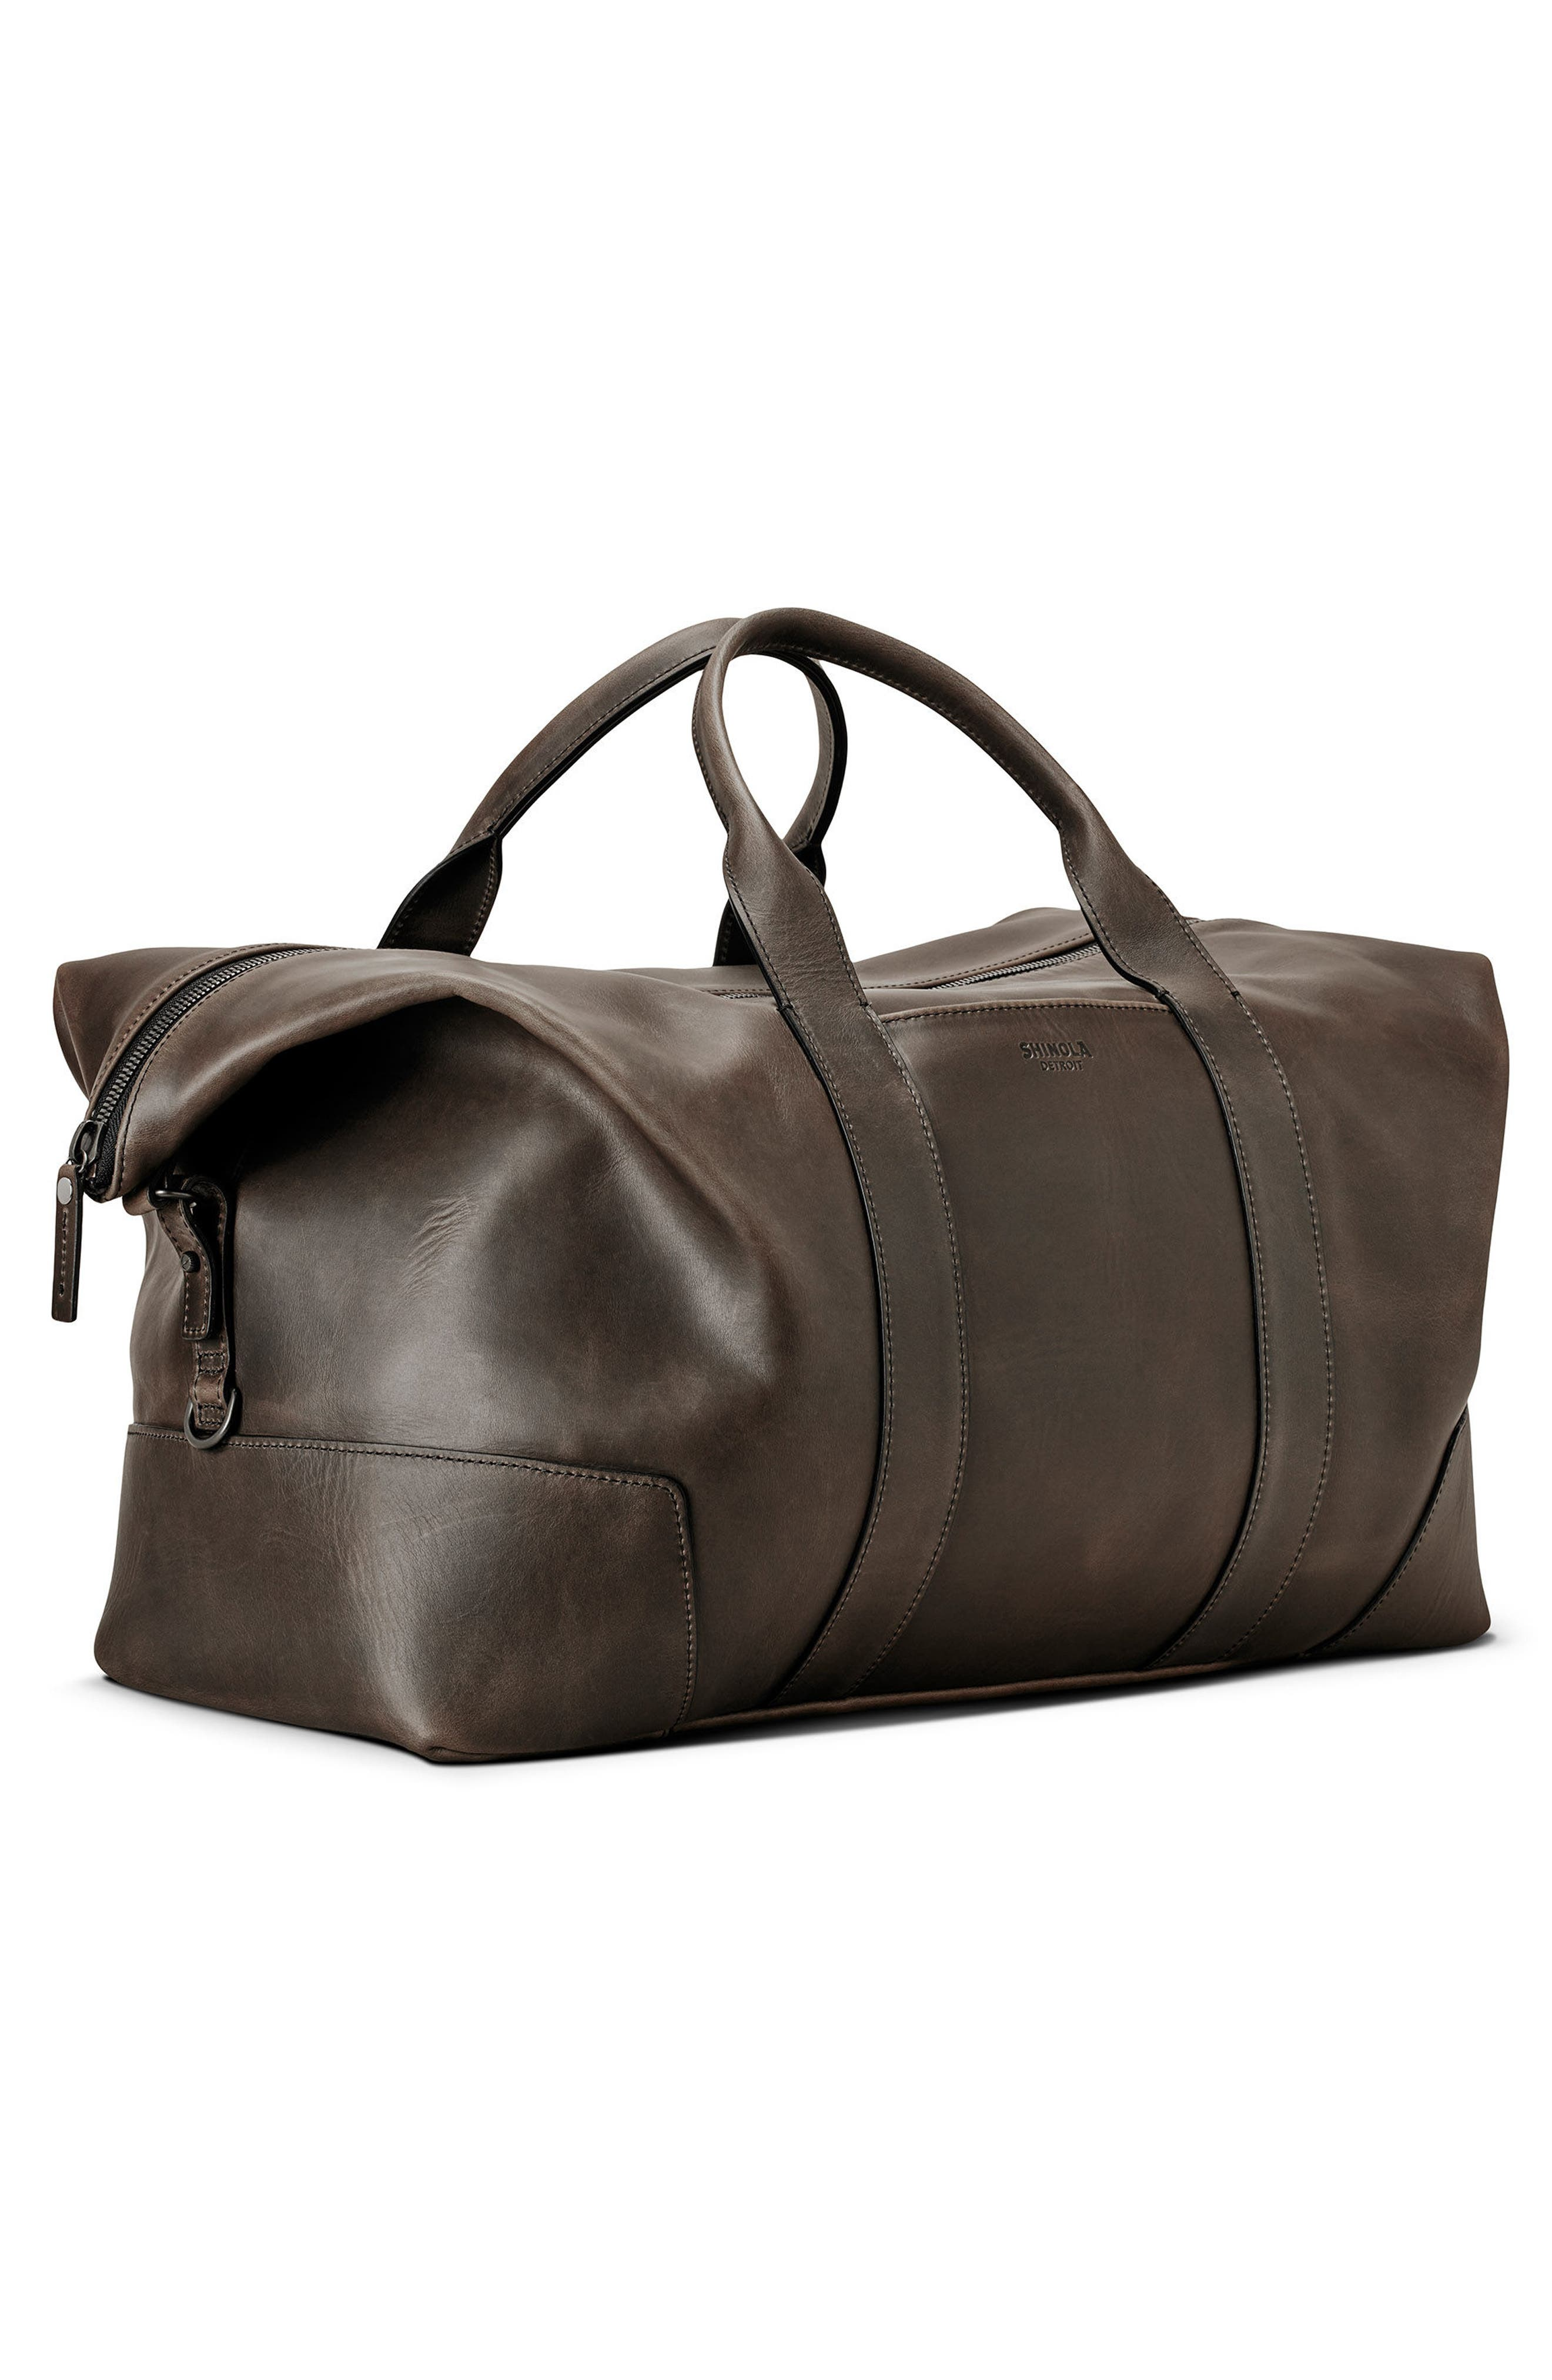 Madone Leather Carryall Bag,                             Alternate thumbnail 4, color,                             018